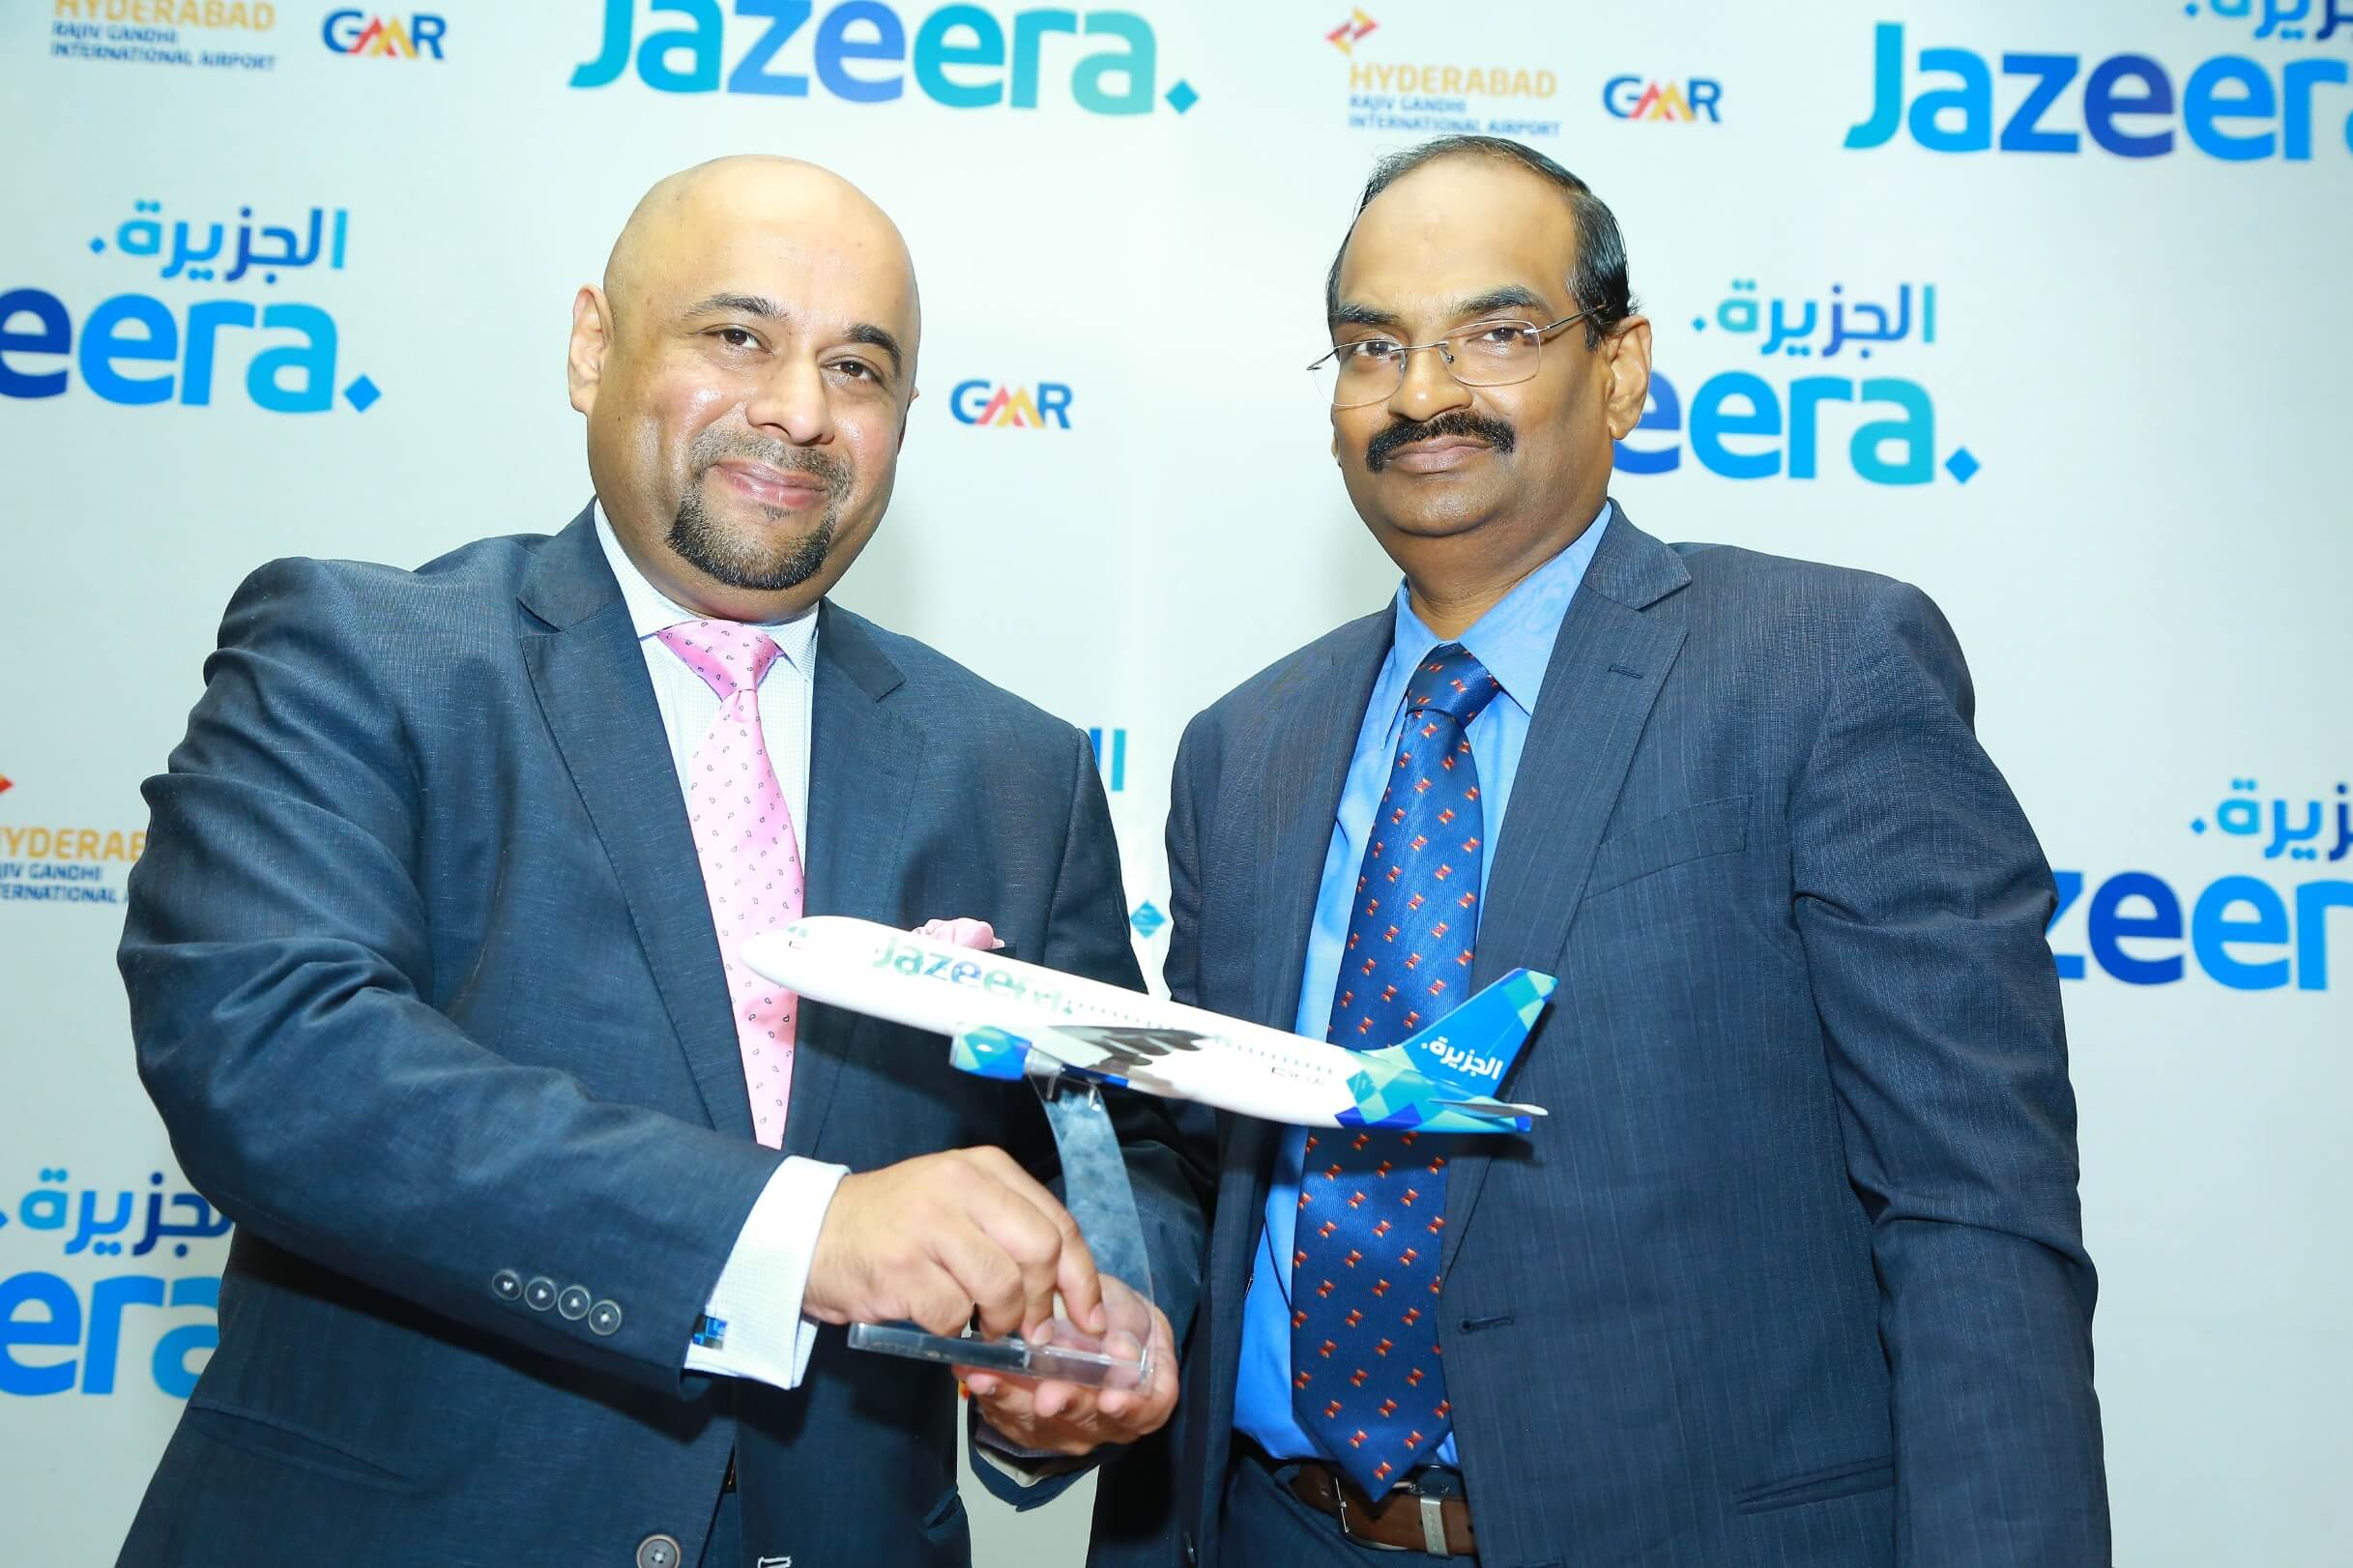 Kuwait's Jazeera Airways - Daily Flights to Hyderabad